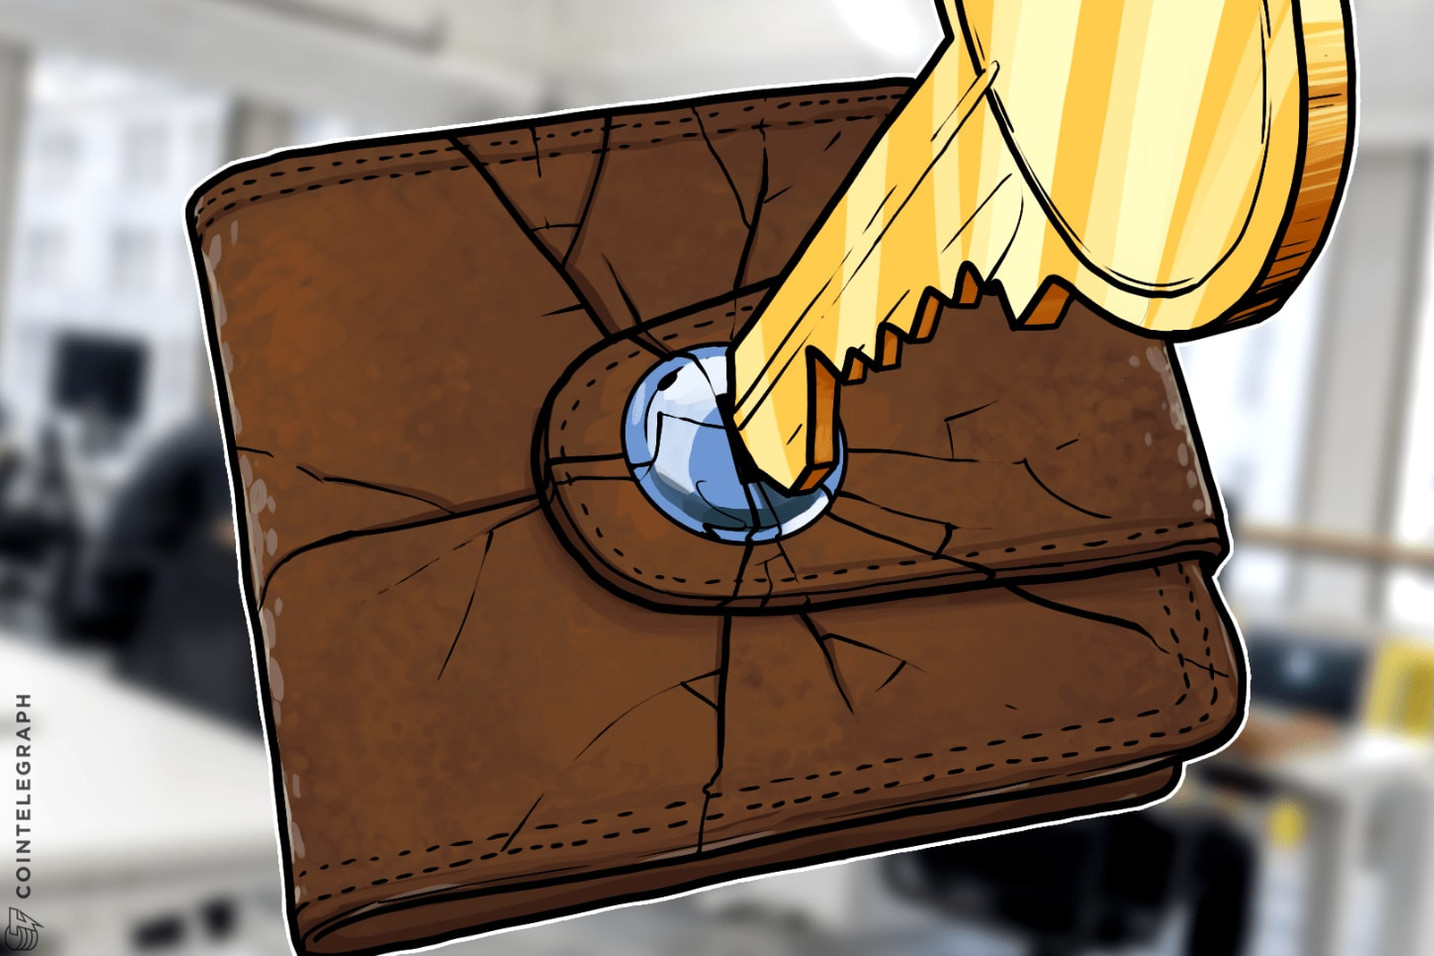 World's Sixth Largest Crypto Exchange Bithumb Hacked, Loses $30 Mln